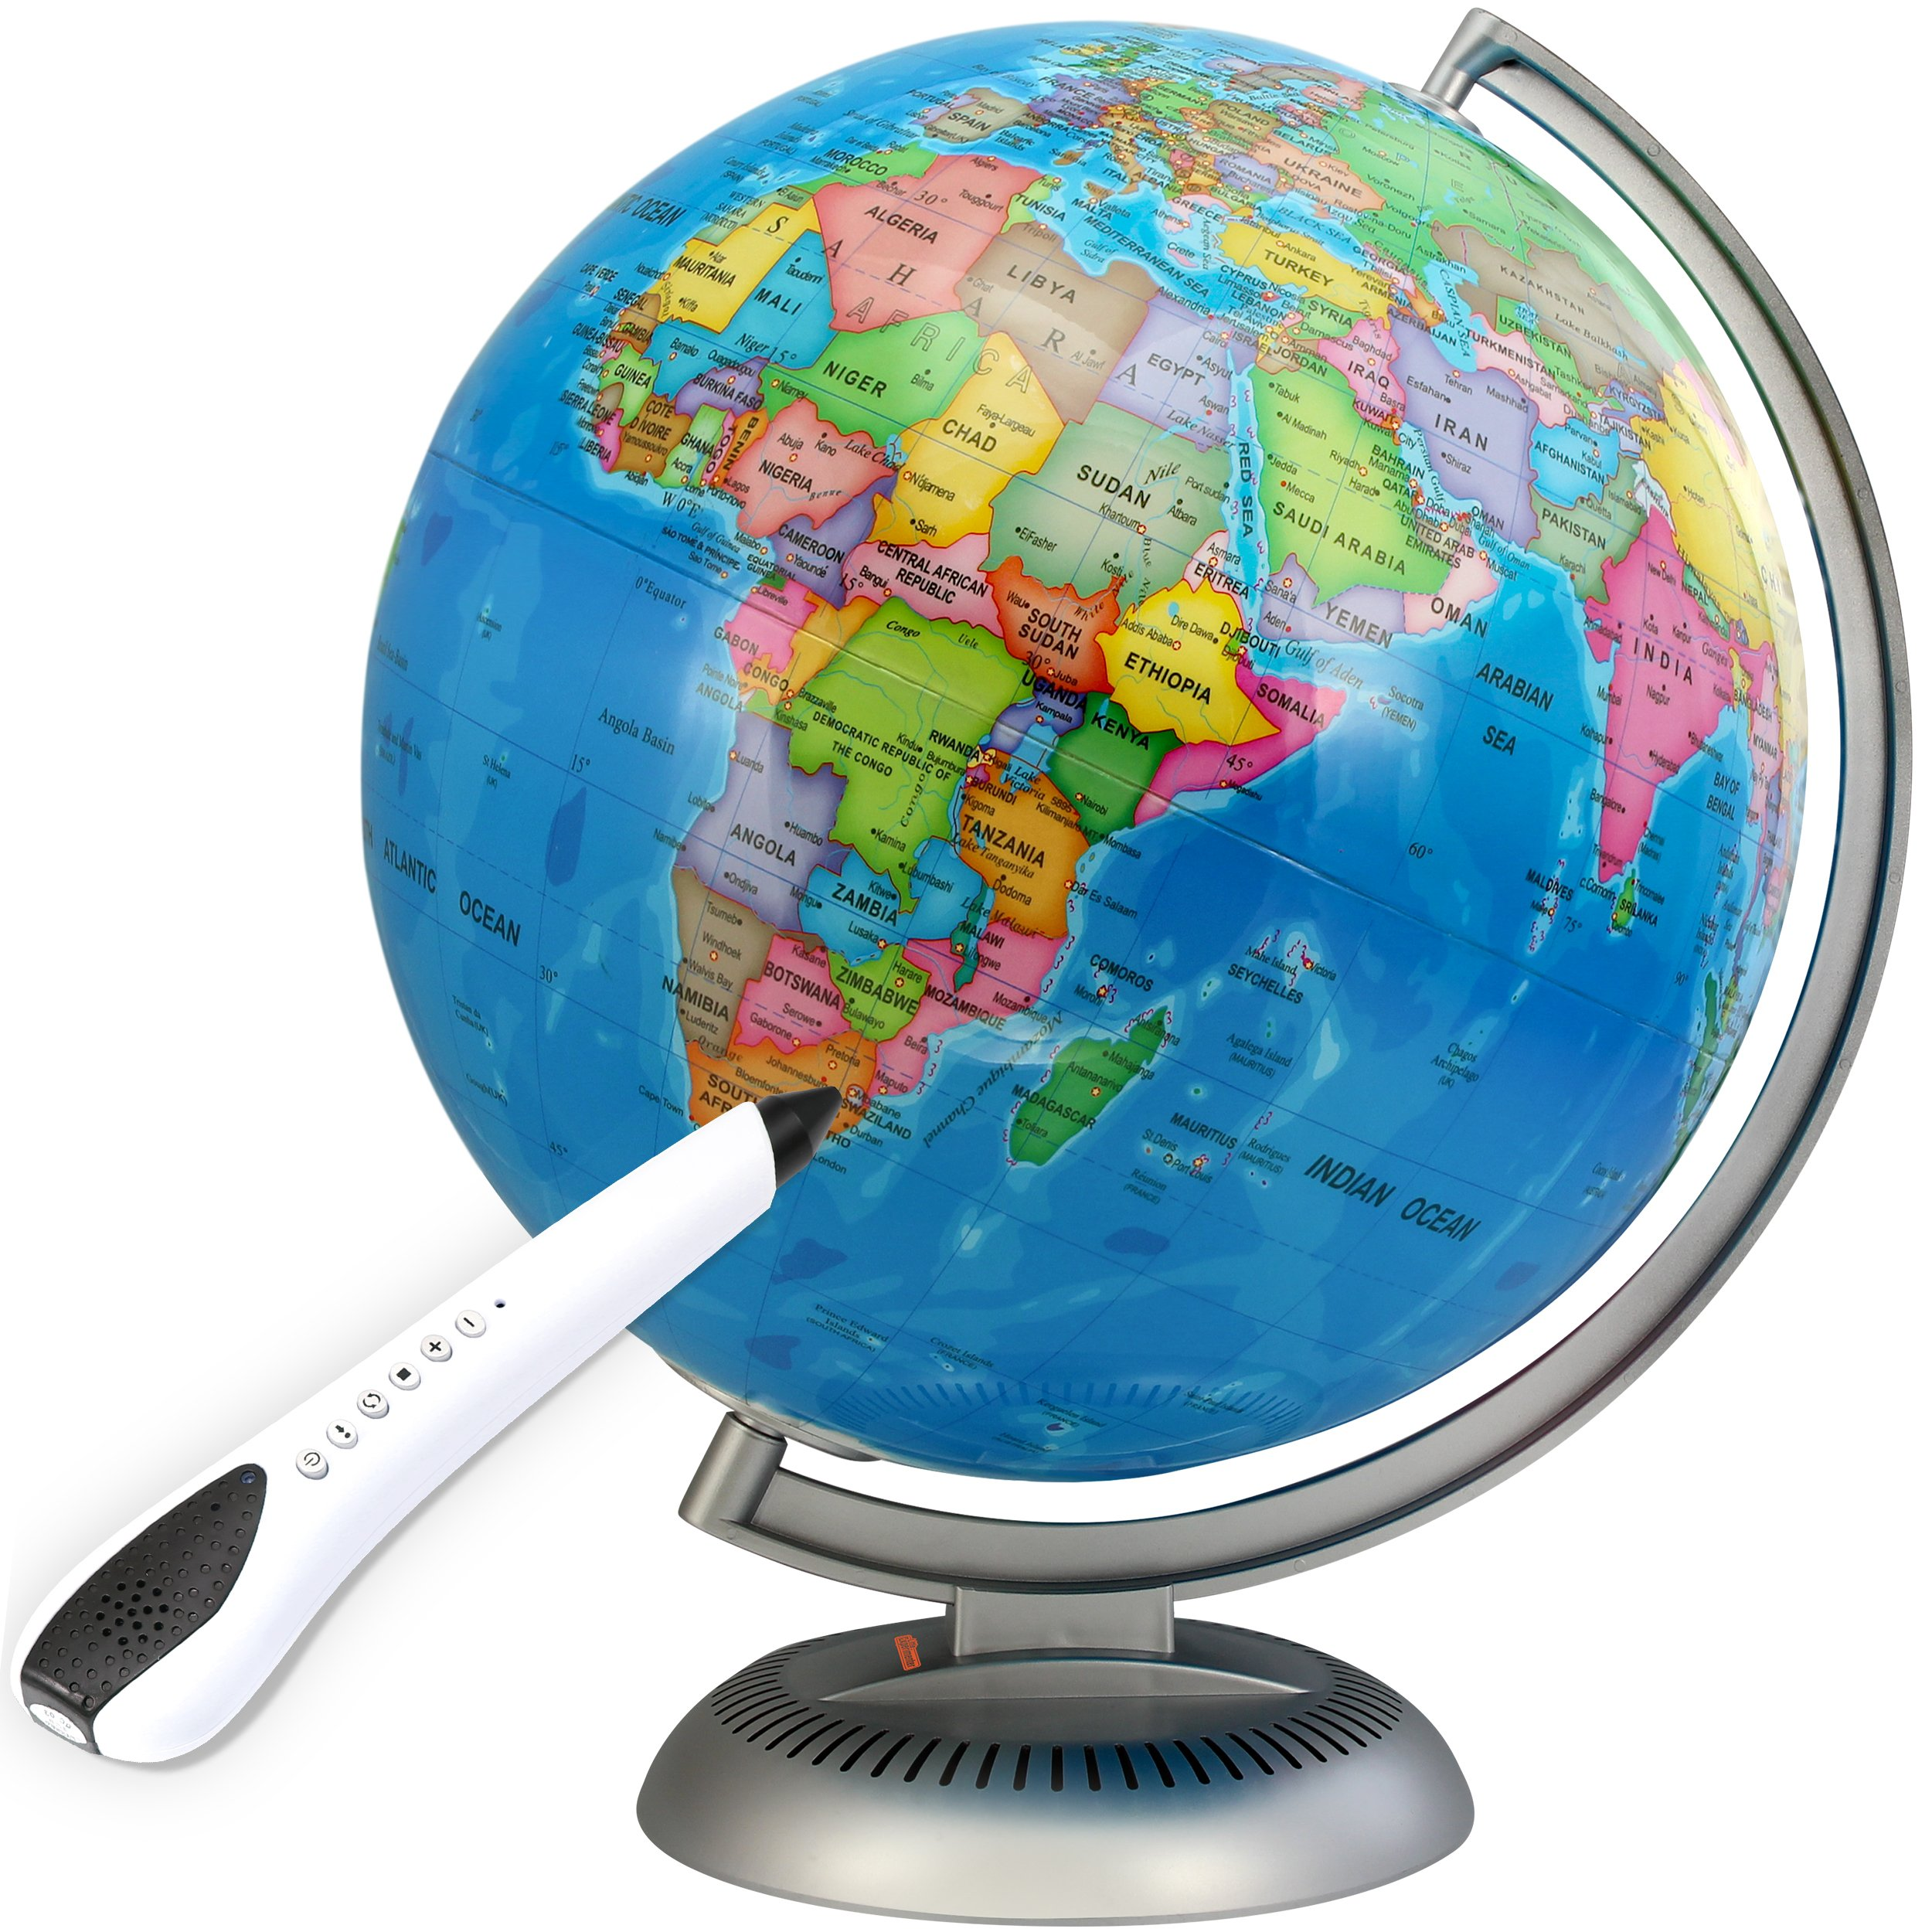 Illuminated Interactive Globe with Talking Smart Pen - 12'' World Globe Built in LED Light for Night View